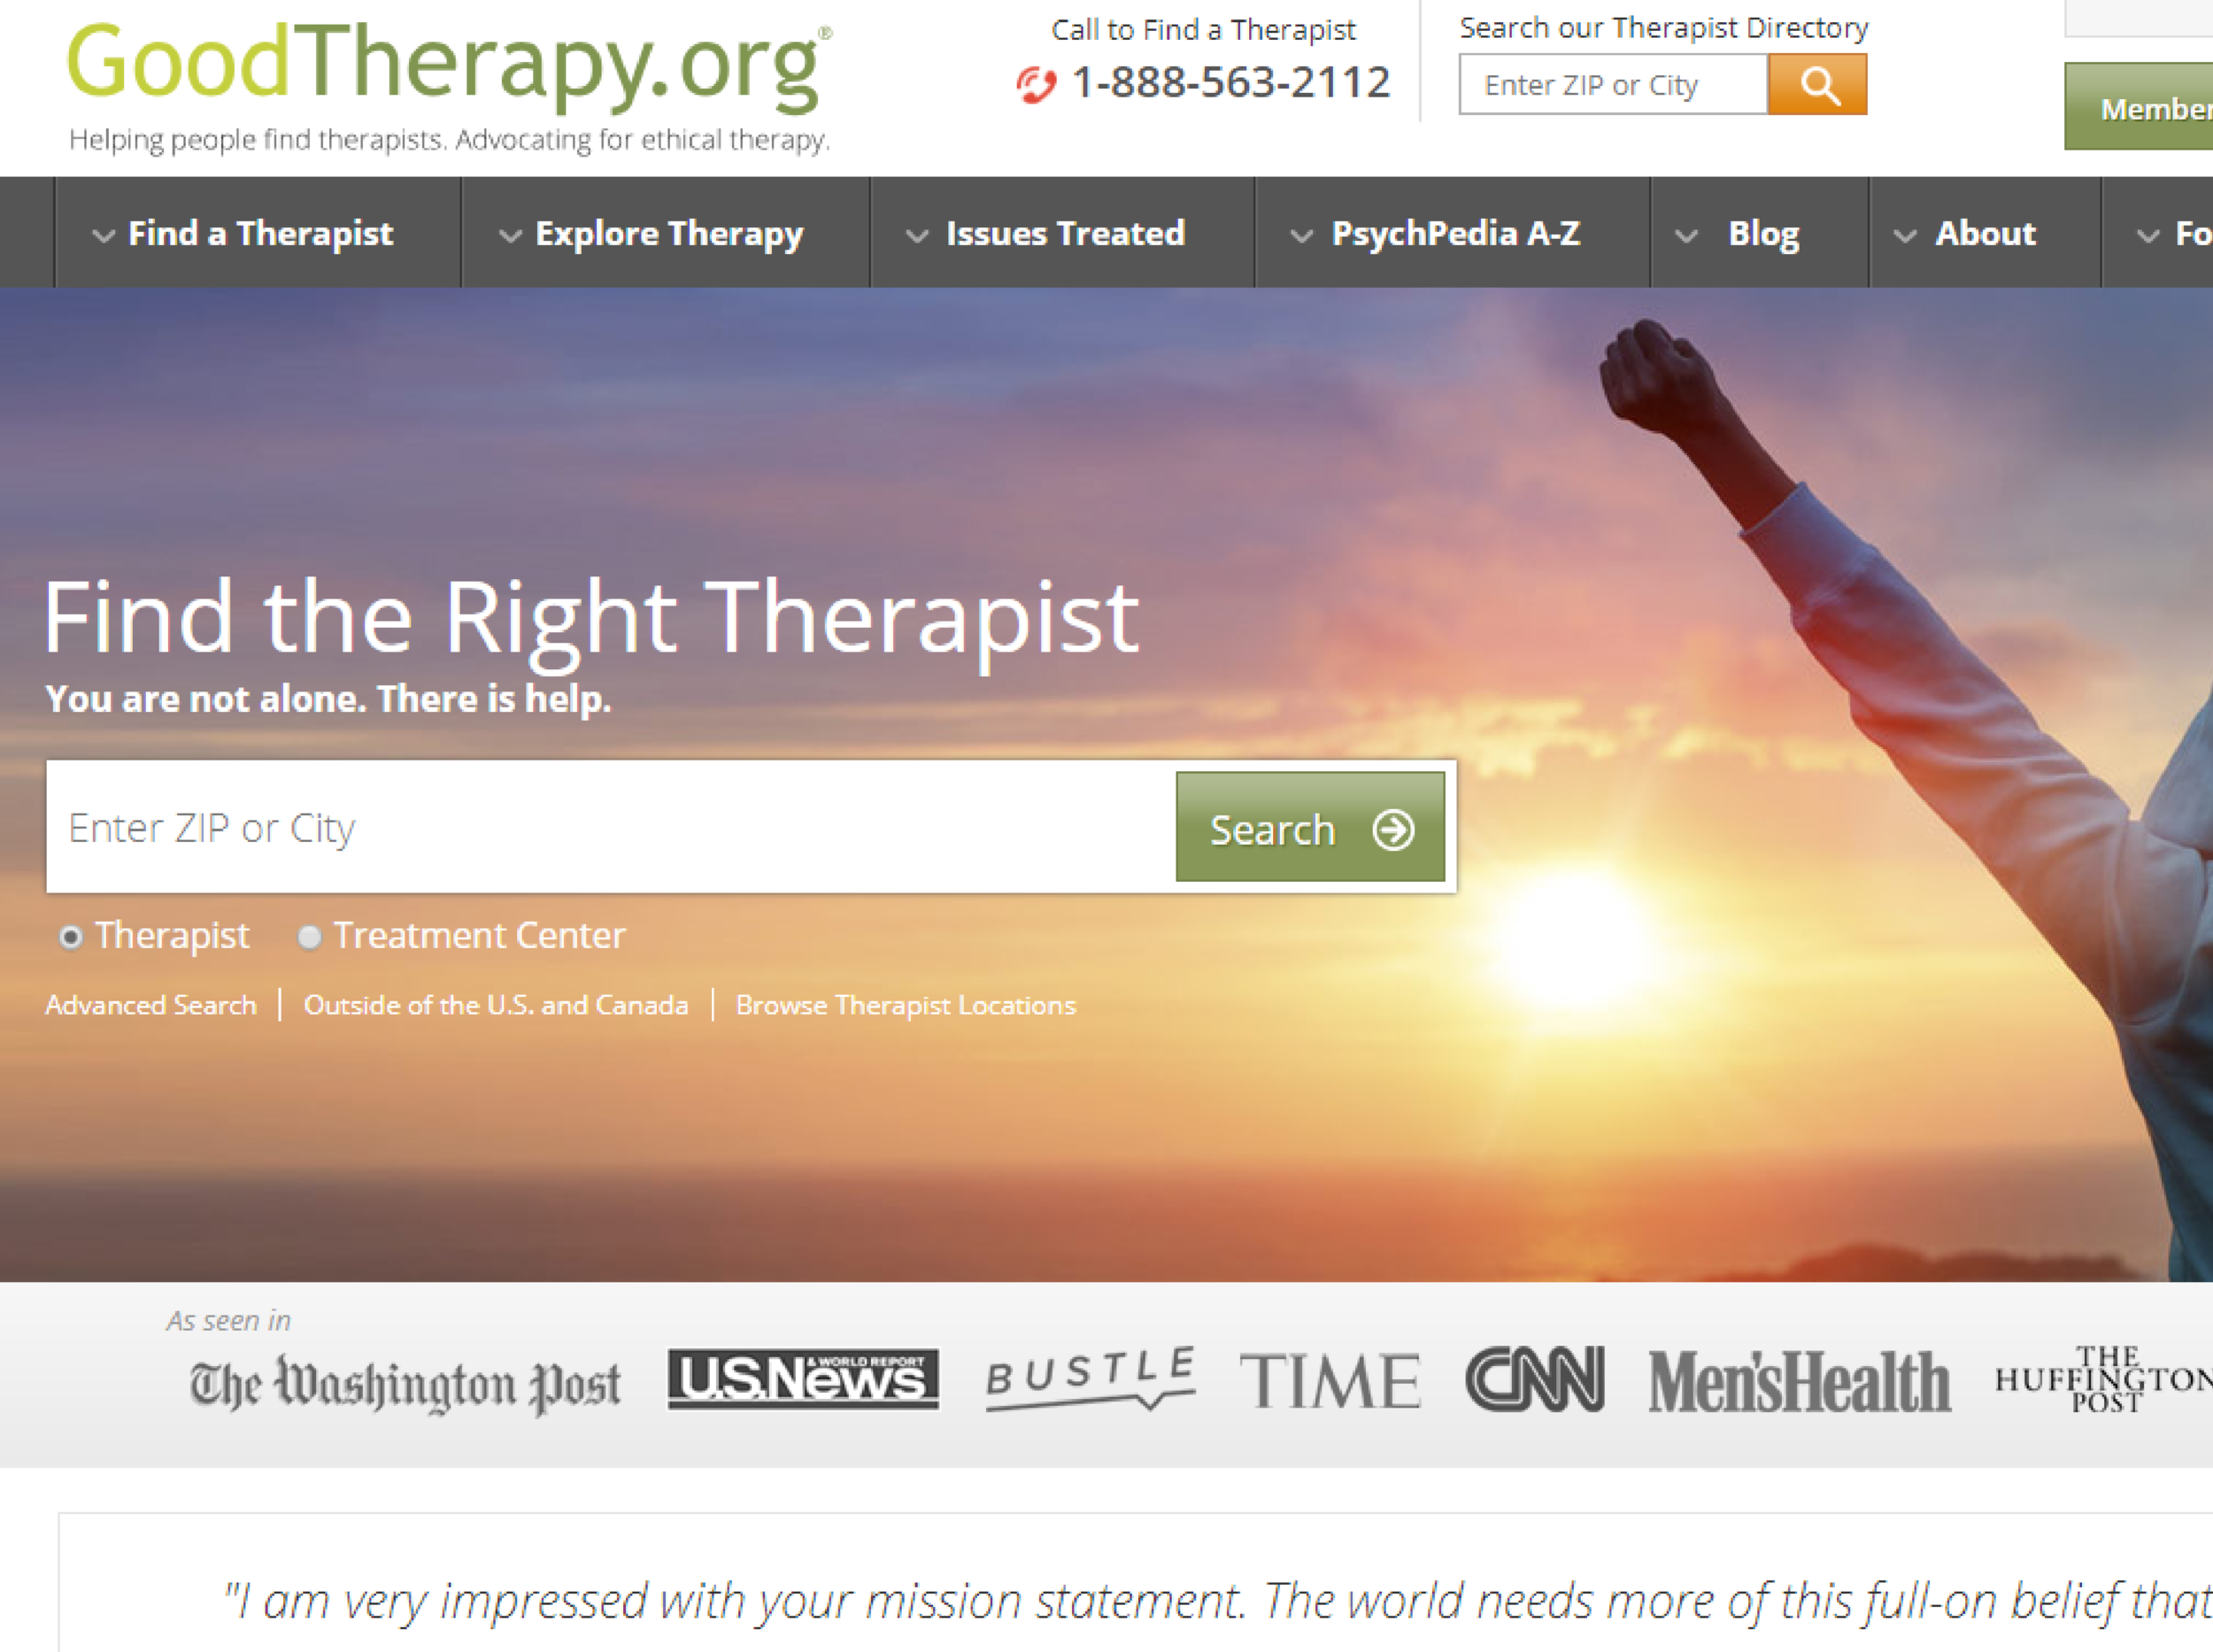 goodtherapy.org